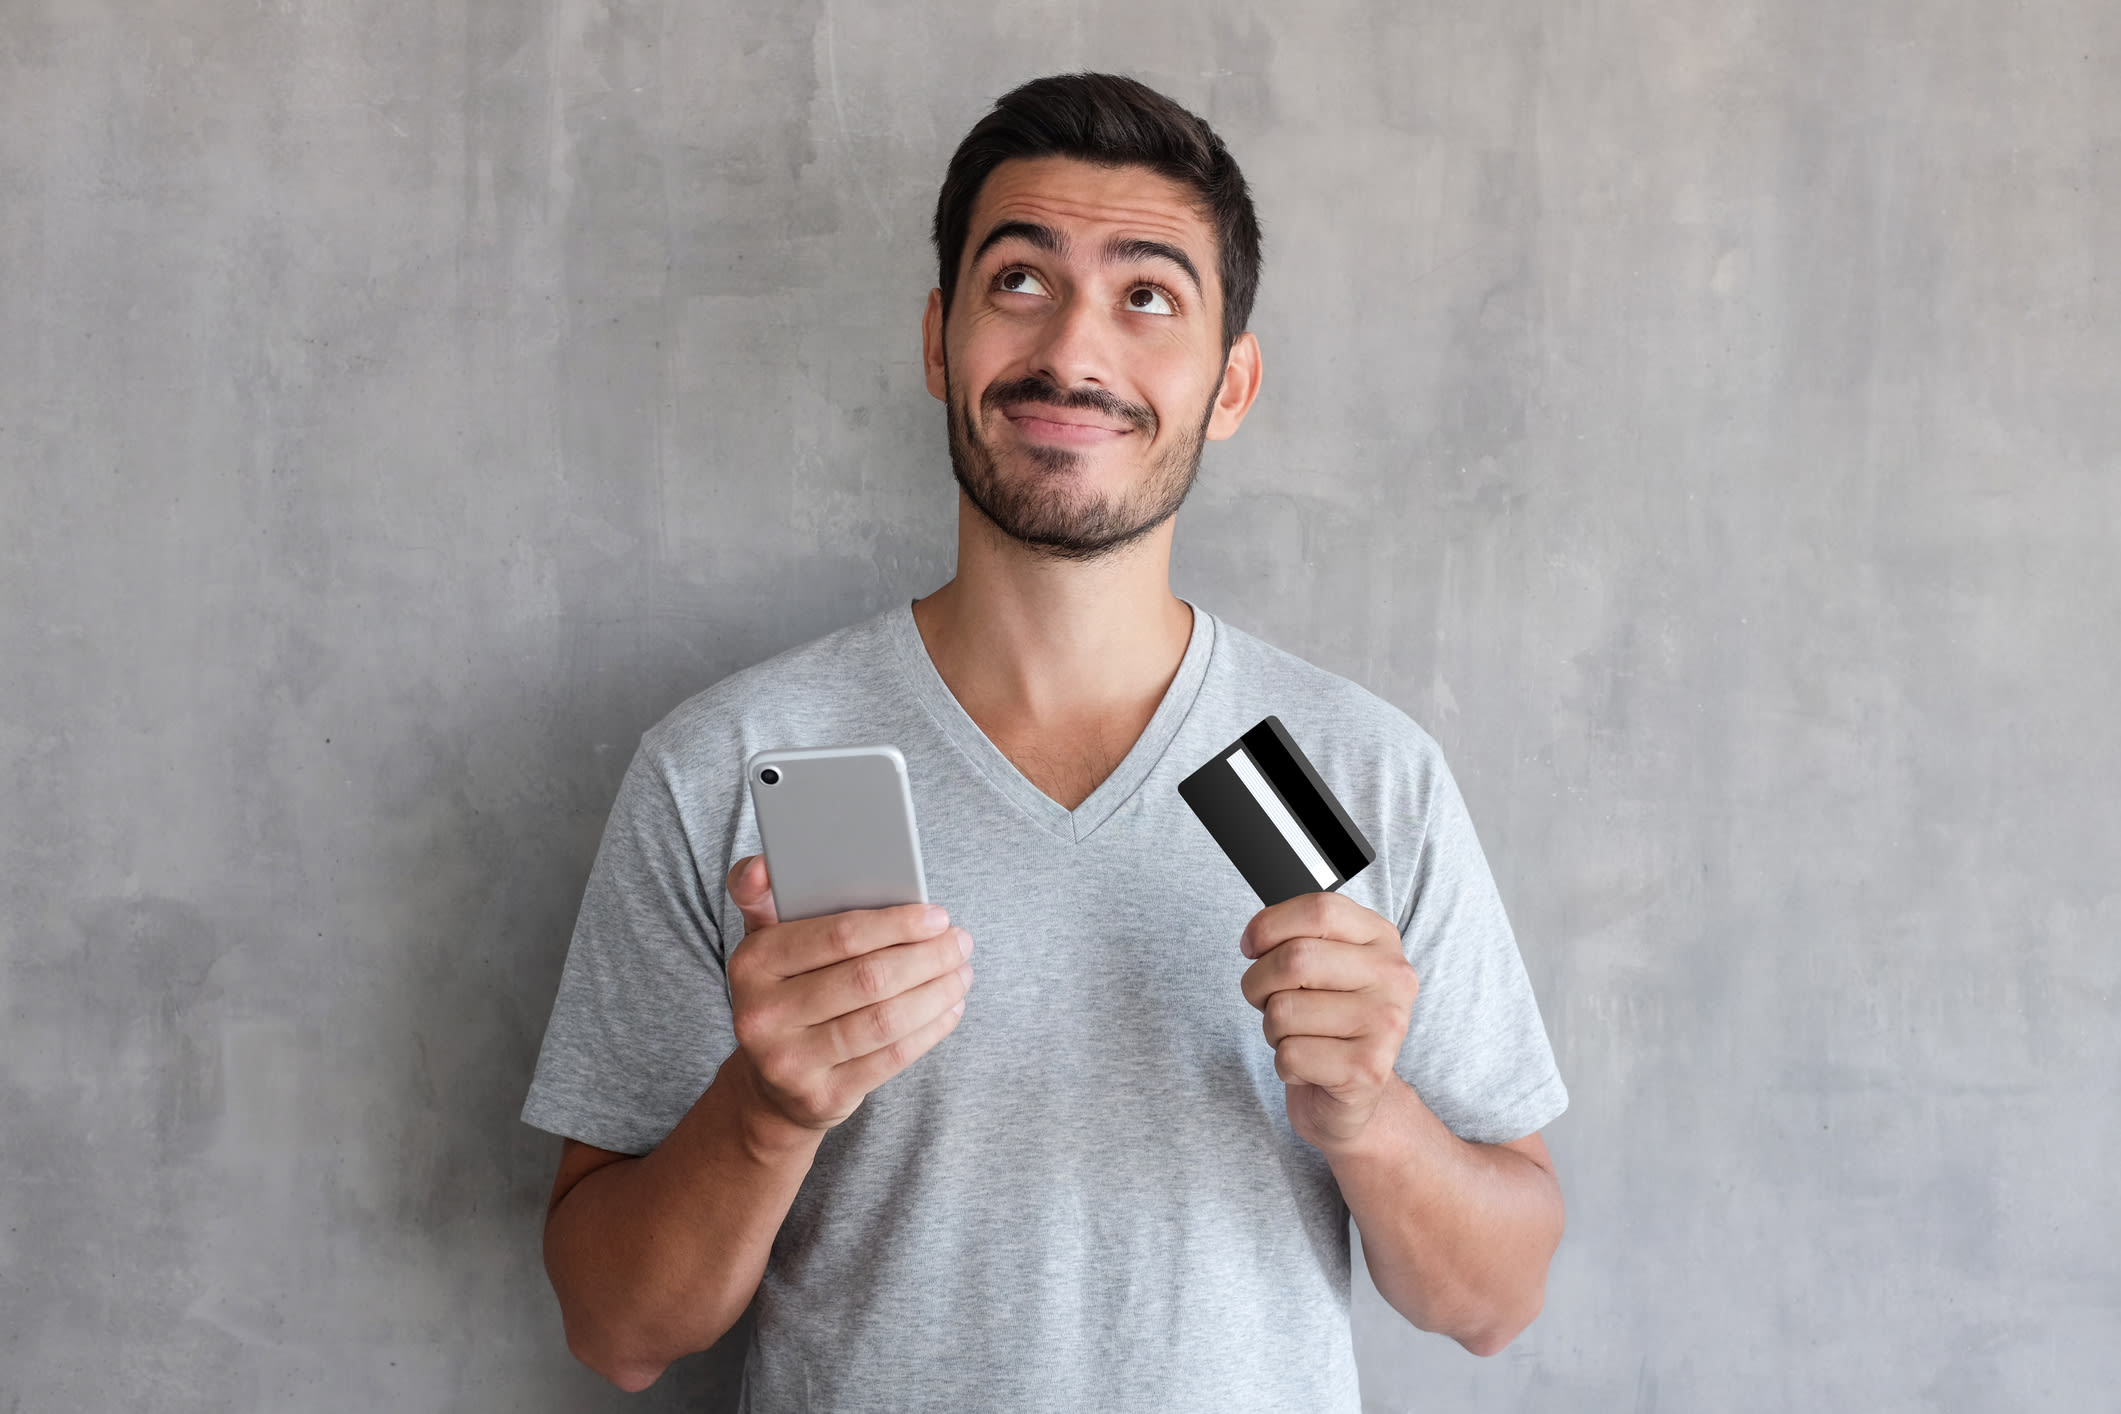 man selling gift card online